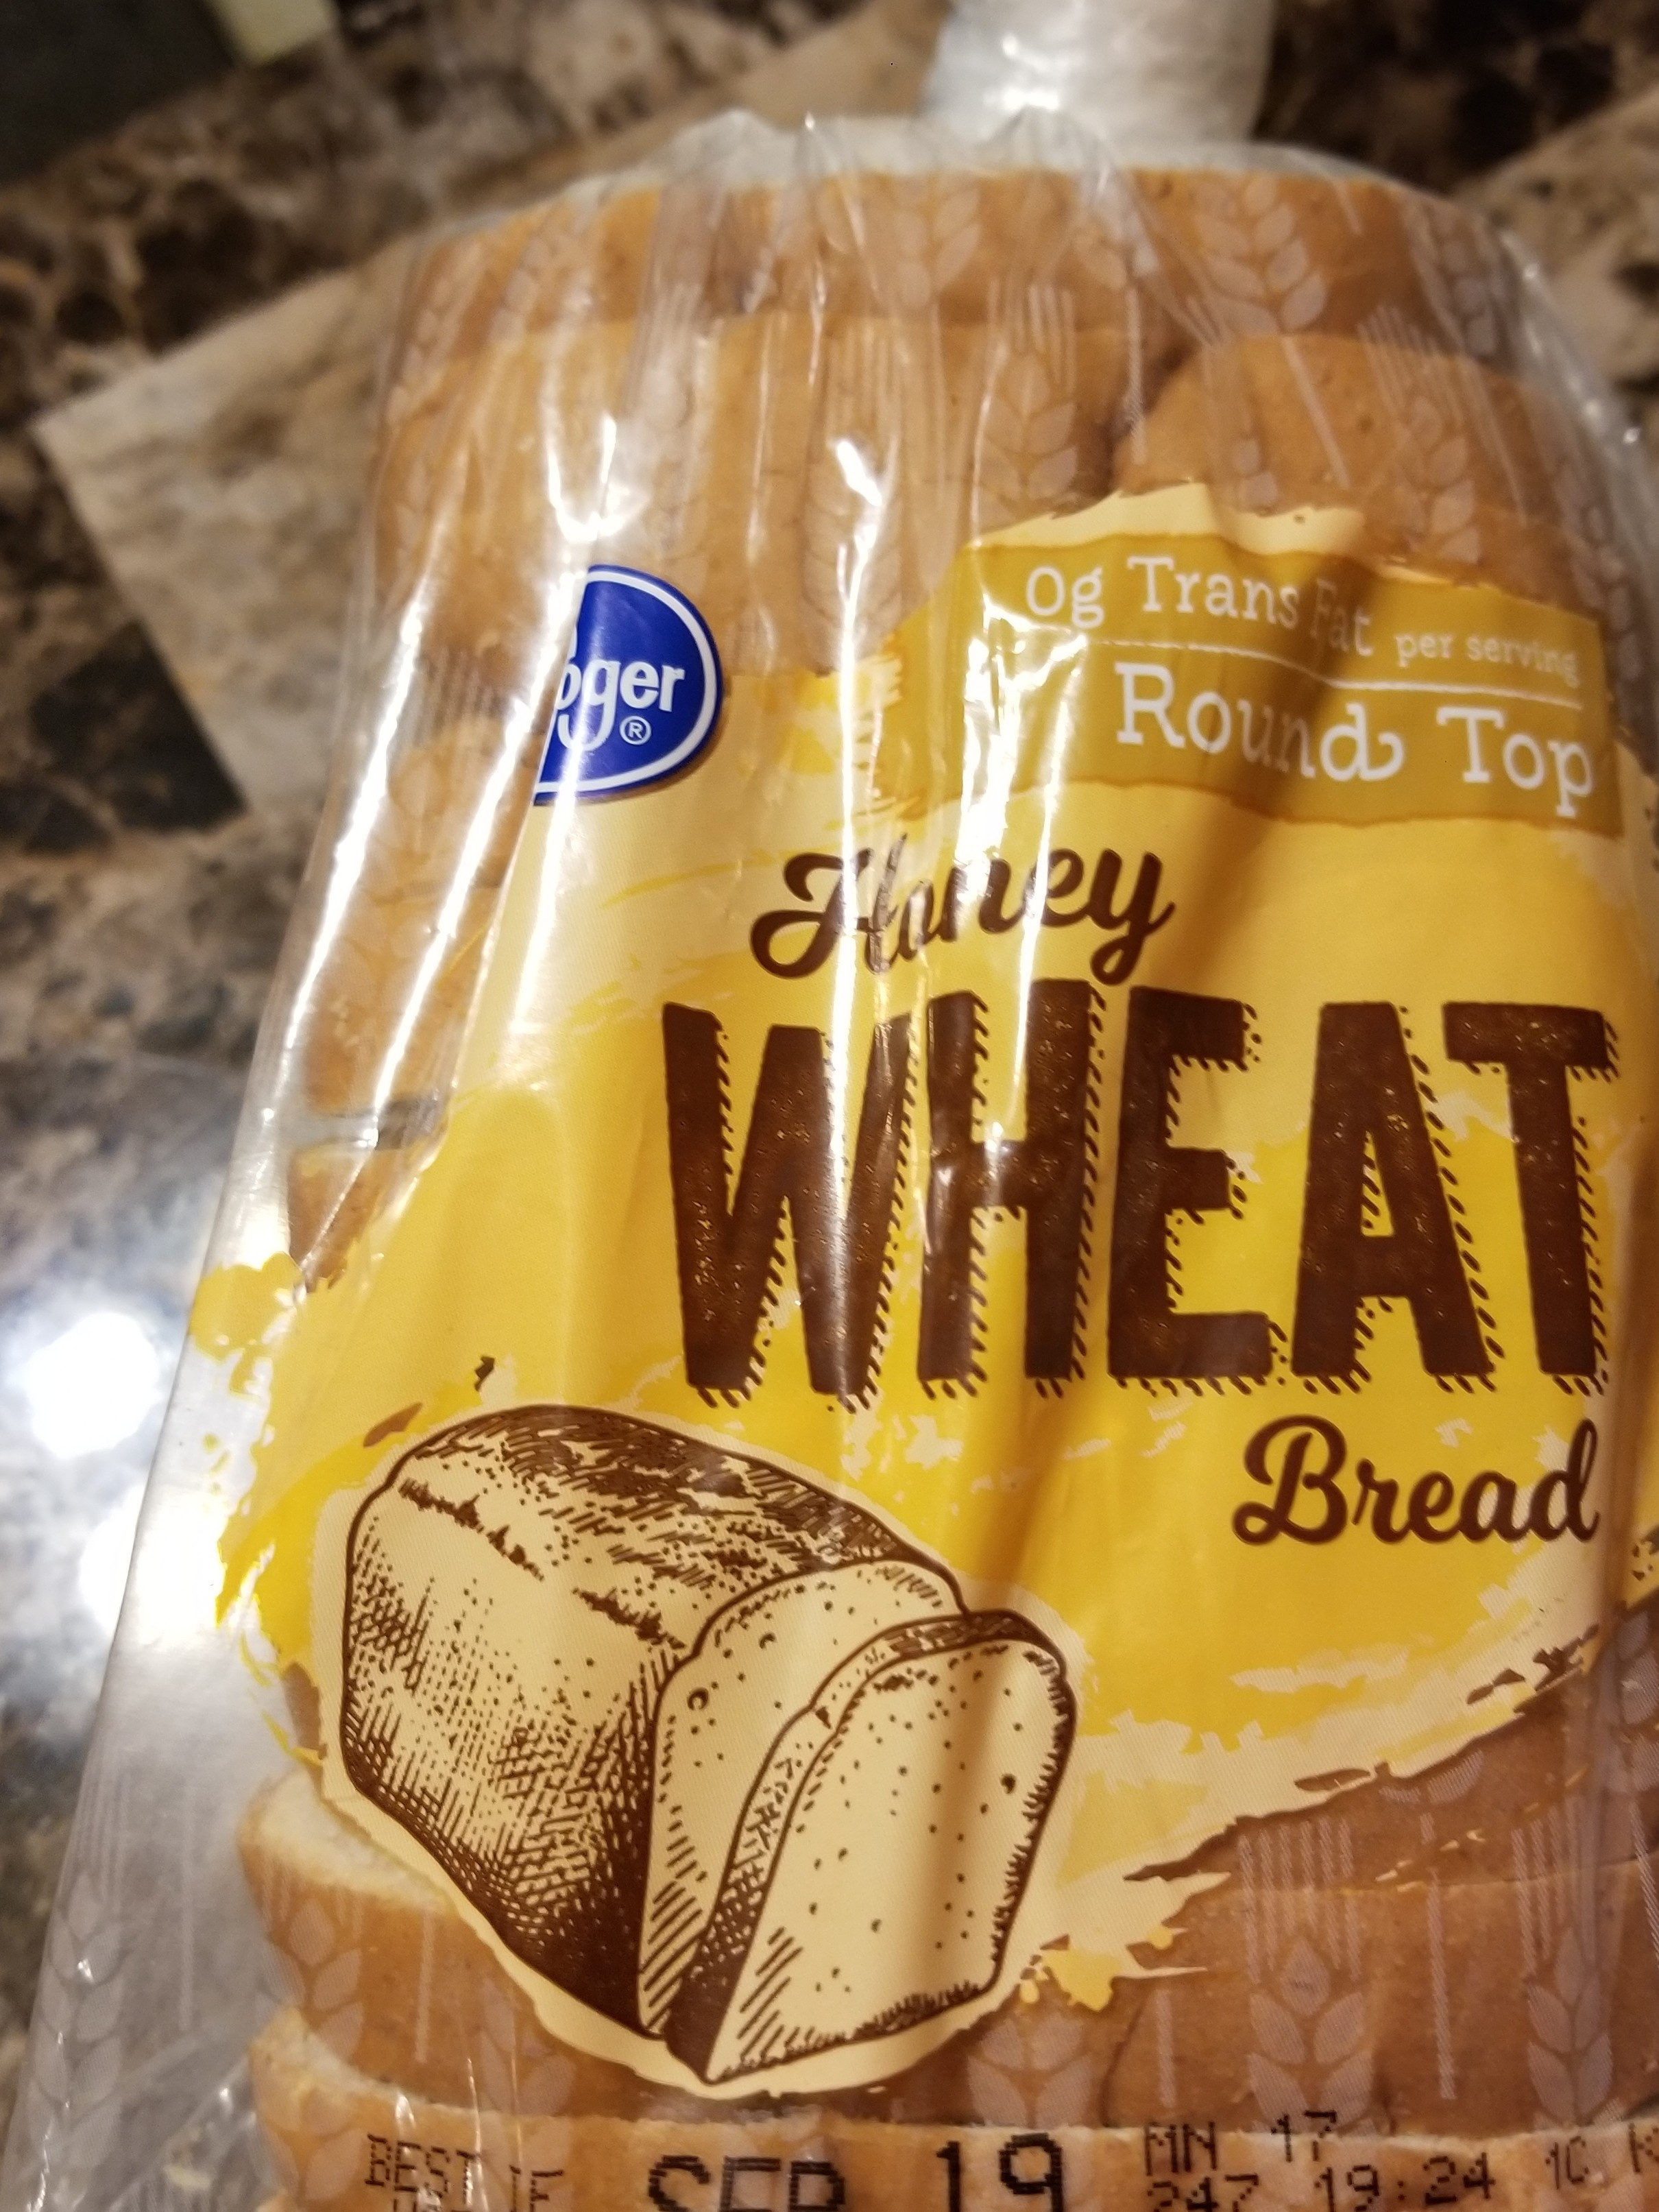 Round top honey wheat bread - Product - en